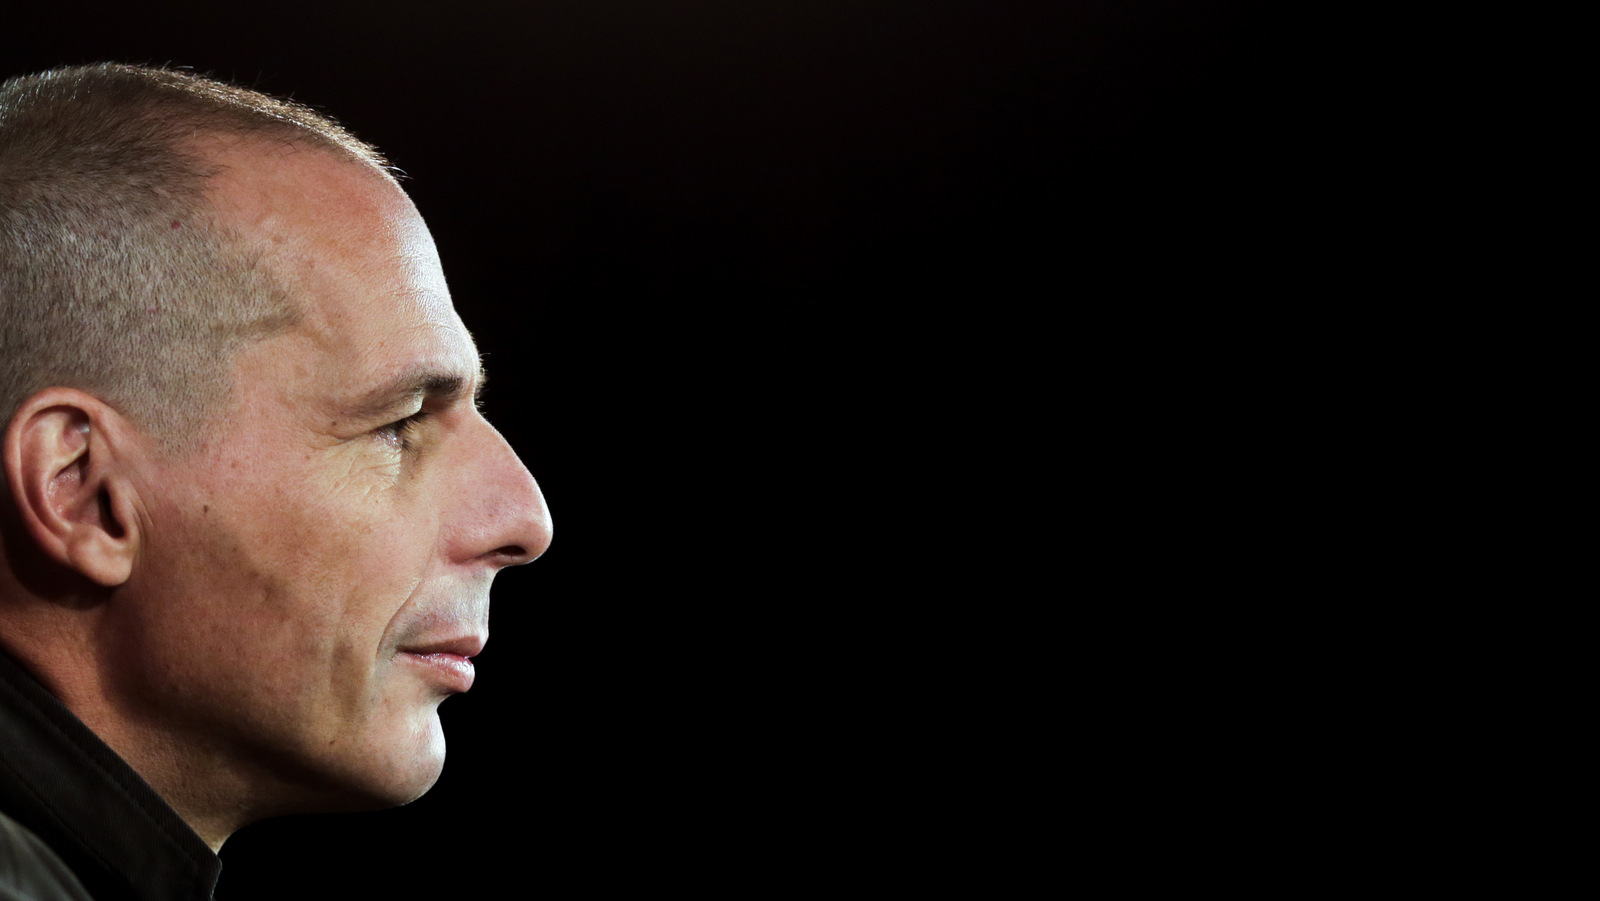 Former Greek finance minister Yanis Varoufakis attends a news conference about the launch of a new left-wing pan-Europe political movement called 'Democracy in Europe Movement 2025' in Berlin, Germany, Tuesday, Feb. 9, 2016. (Photo: Markus Schreiber/AP)